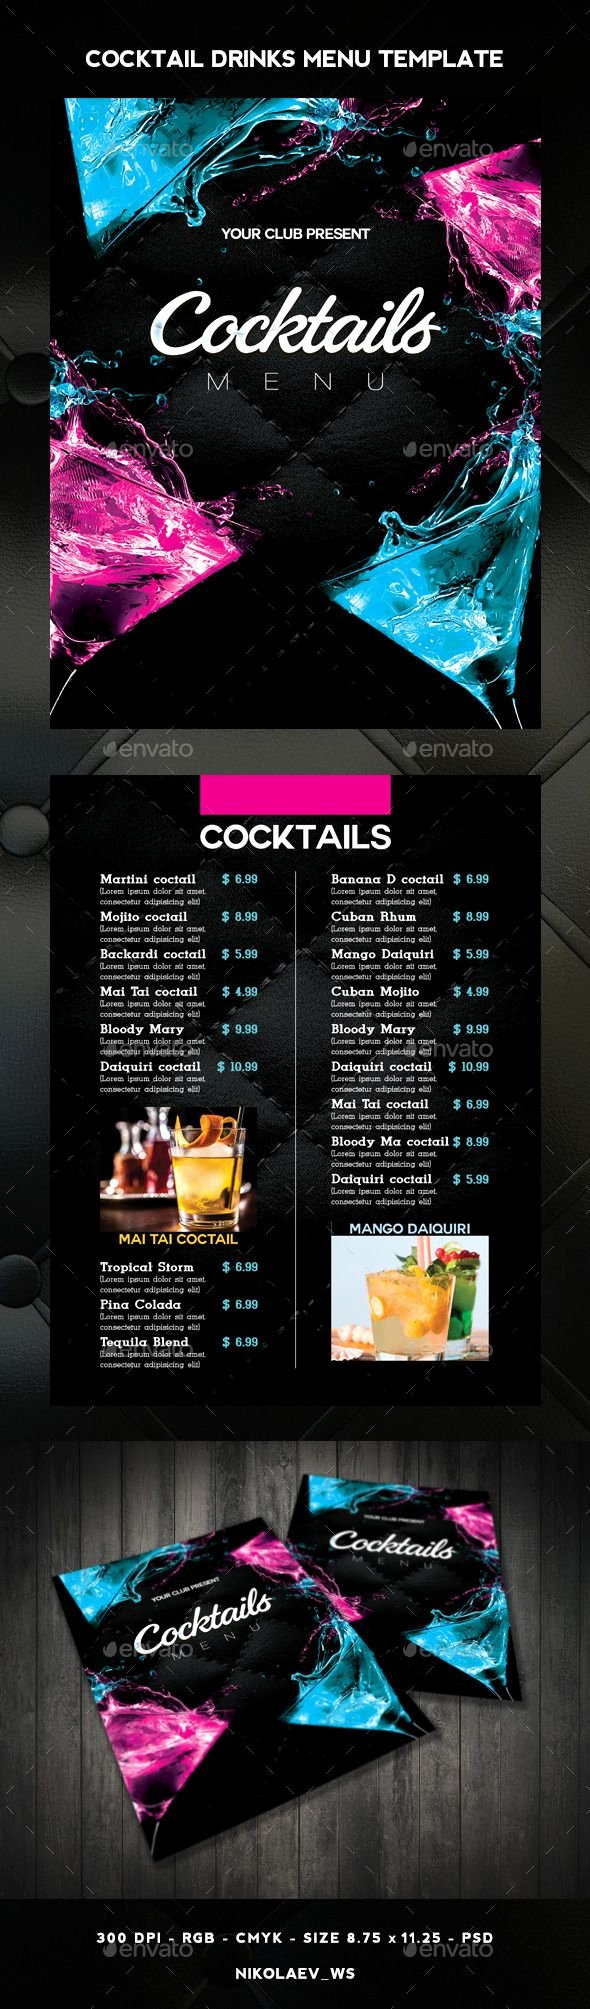 Cocktail Menu Template Free Elegant 1000 Ideas About Menu Templates On Pinterest